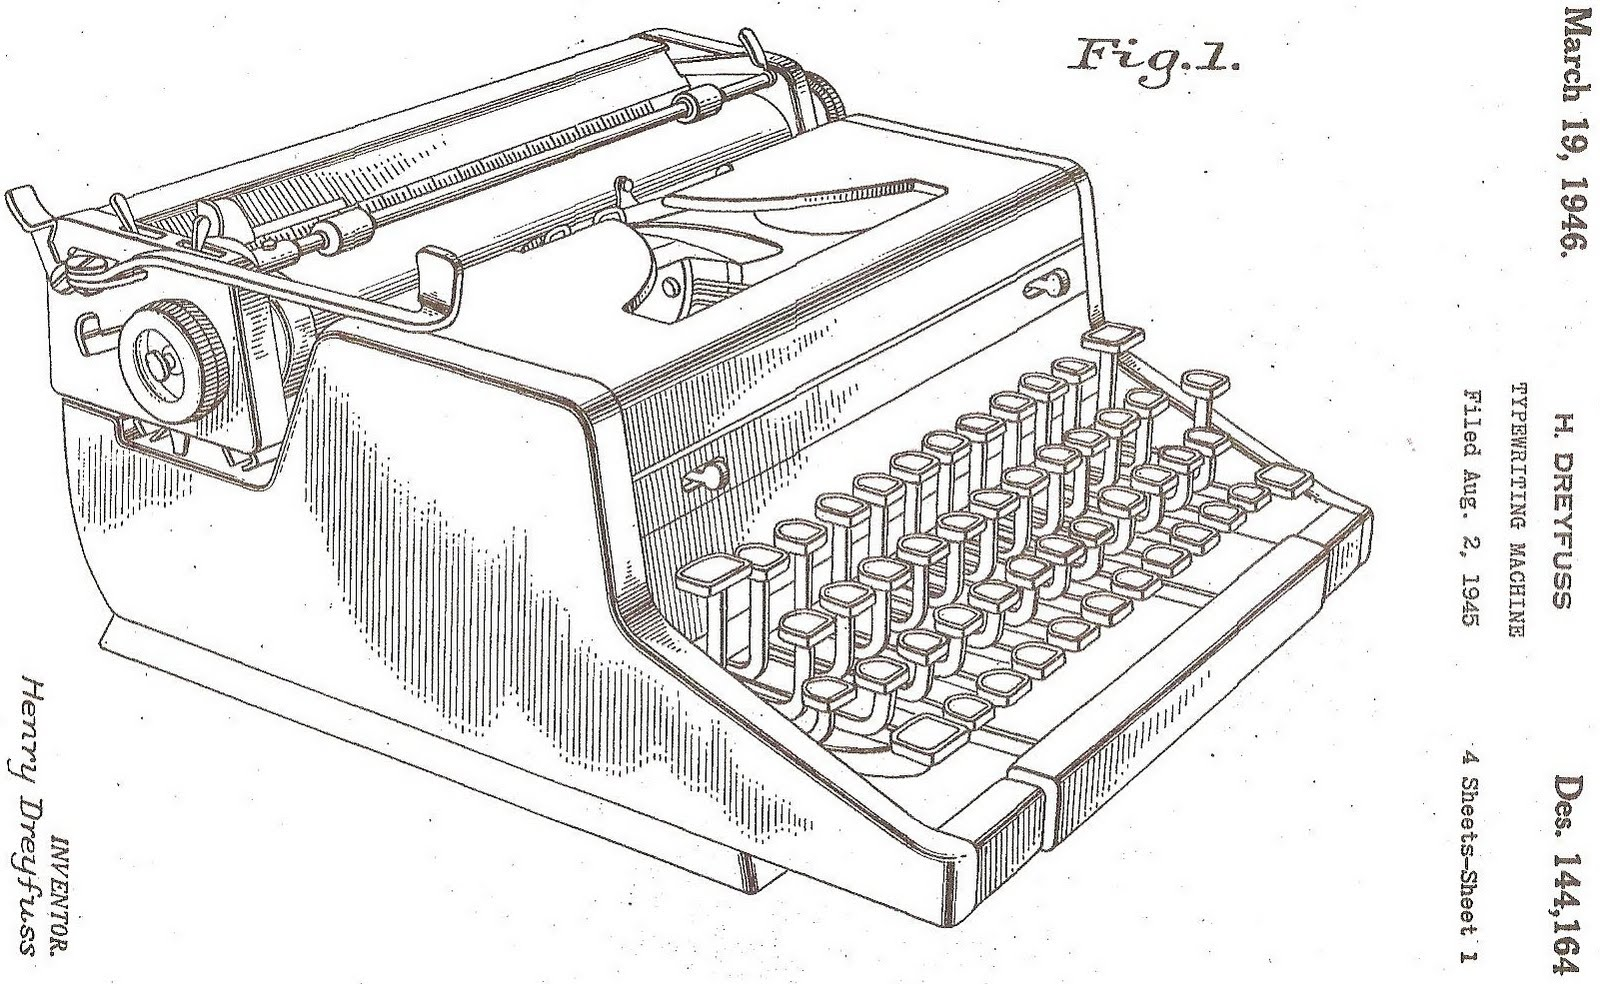 oz.Typewriter: On This Day in Typewriter History (LXXIV)